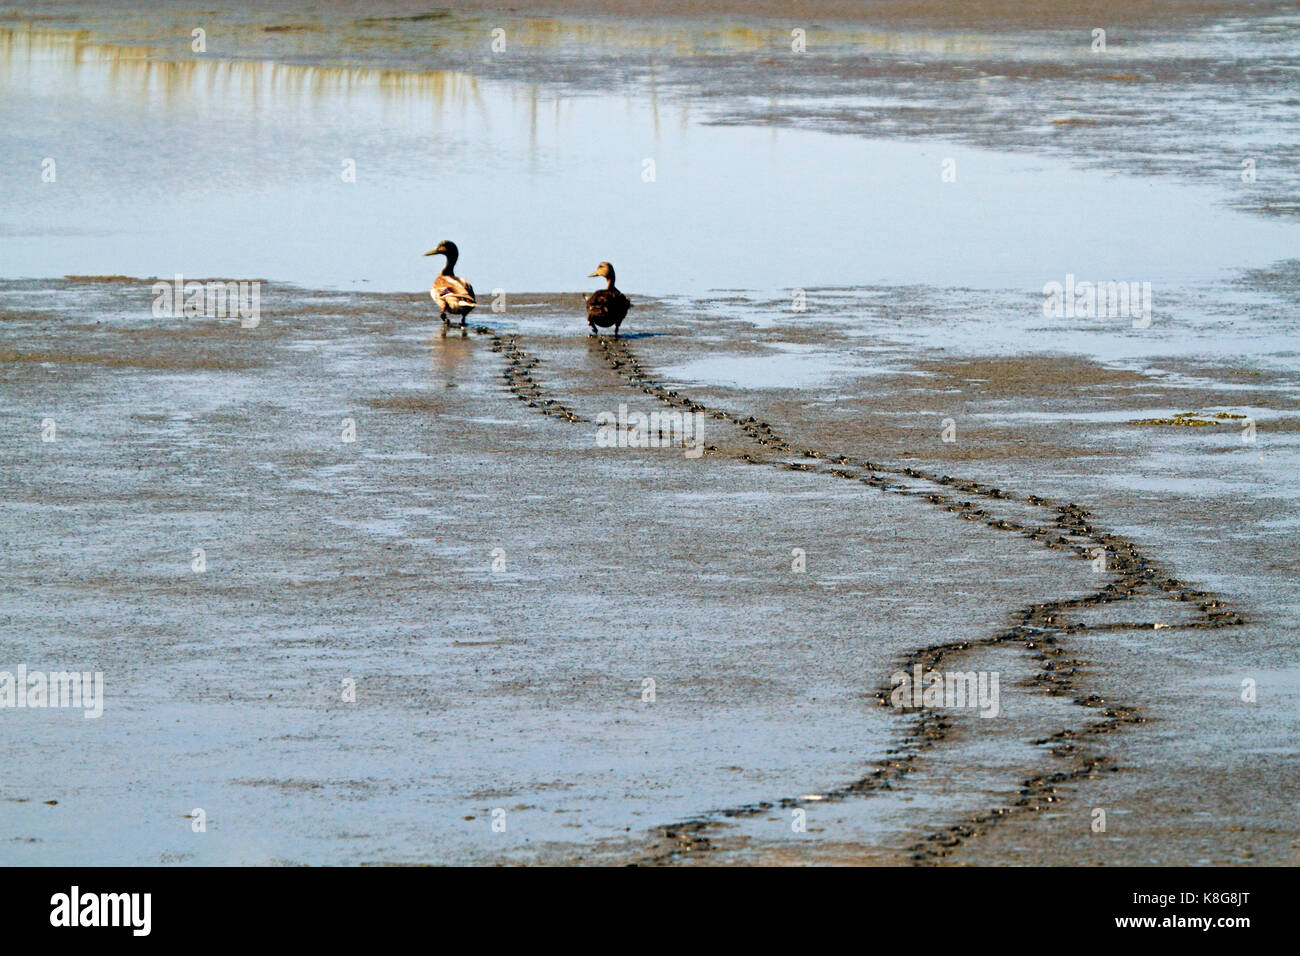 Male and female ducks wondering through a salt marsh in low tide. ewdin B. Forsythe NWR, New Jersey, USA - Stock Image